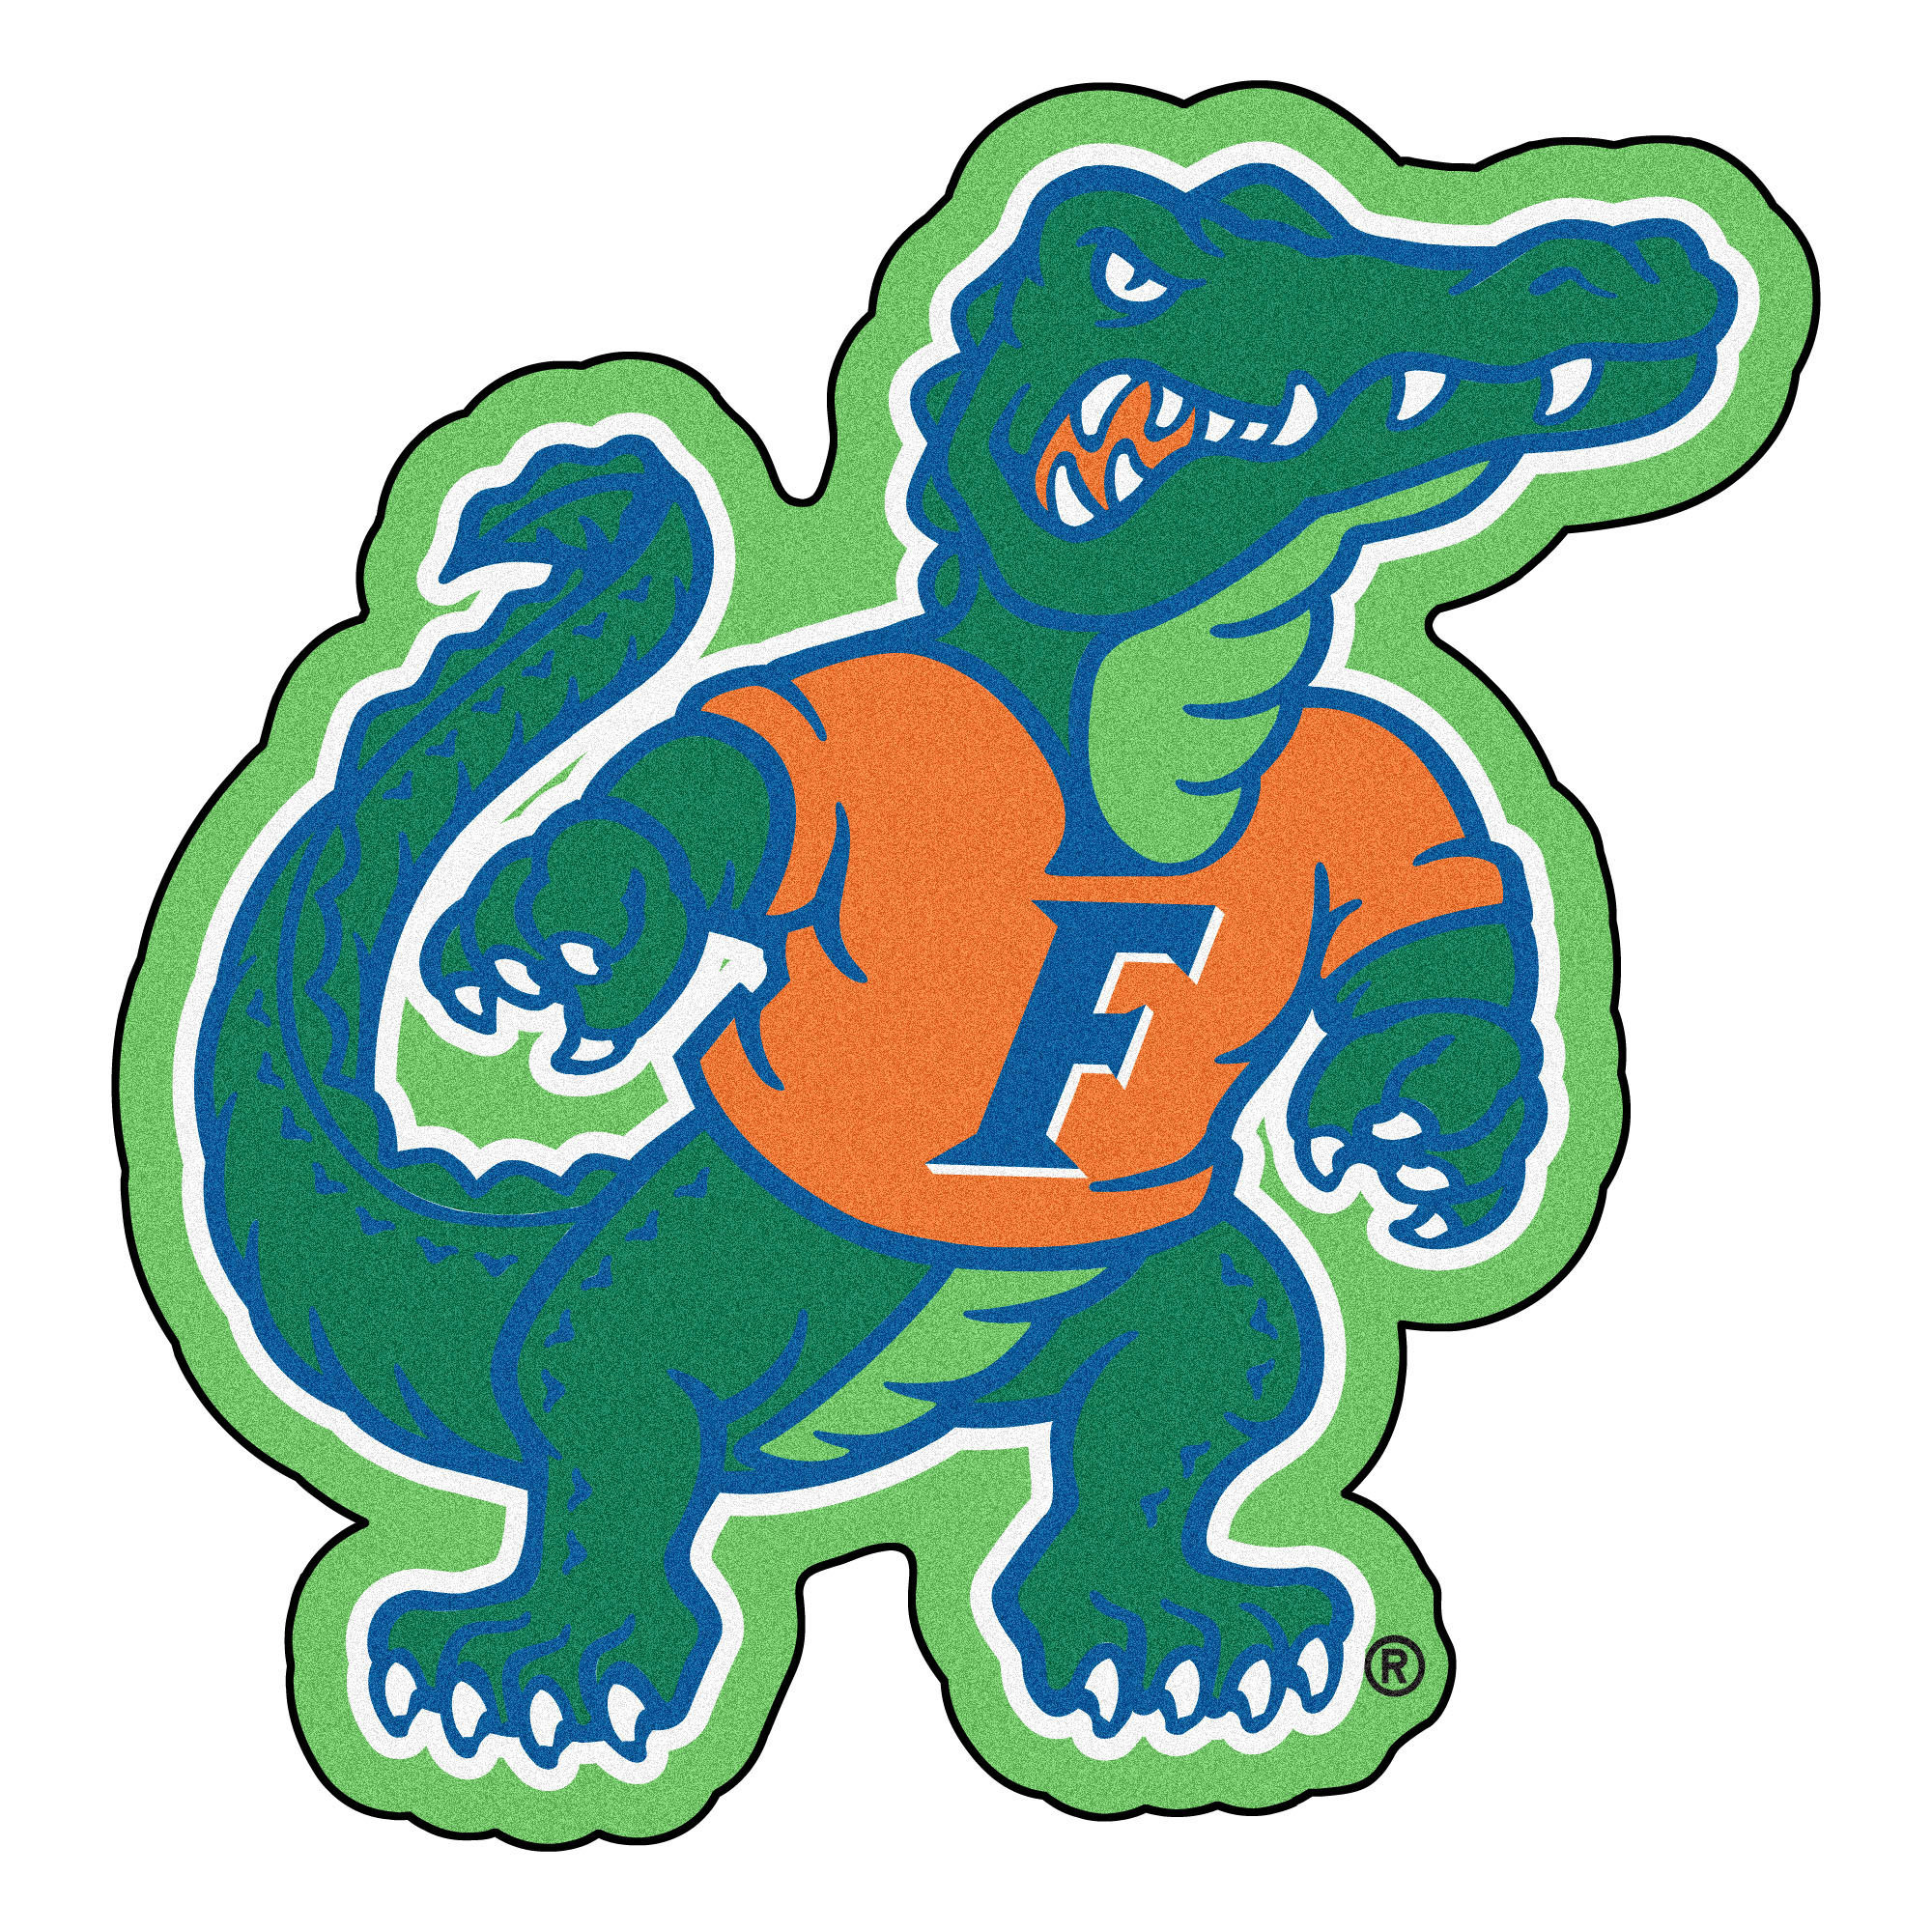 2000x2000 University Of Florida Gators Mascot Area Rug 643517217808 Ebay